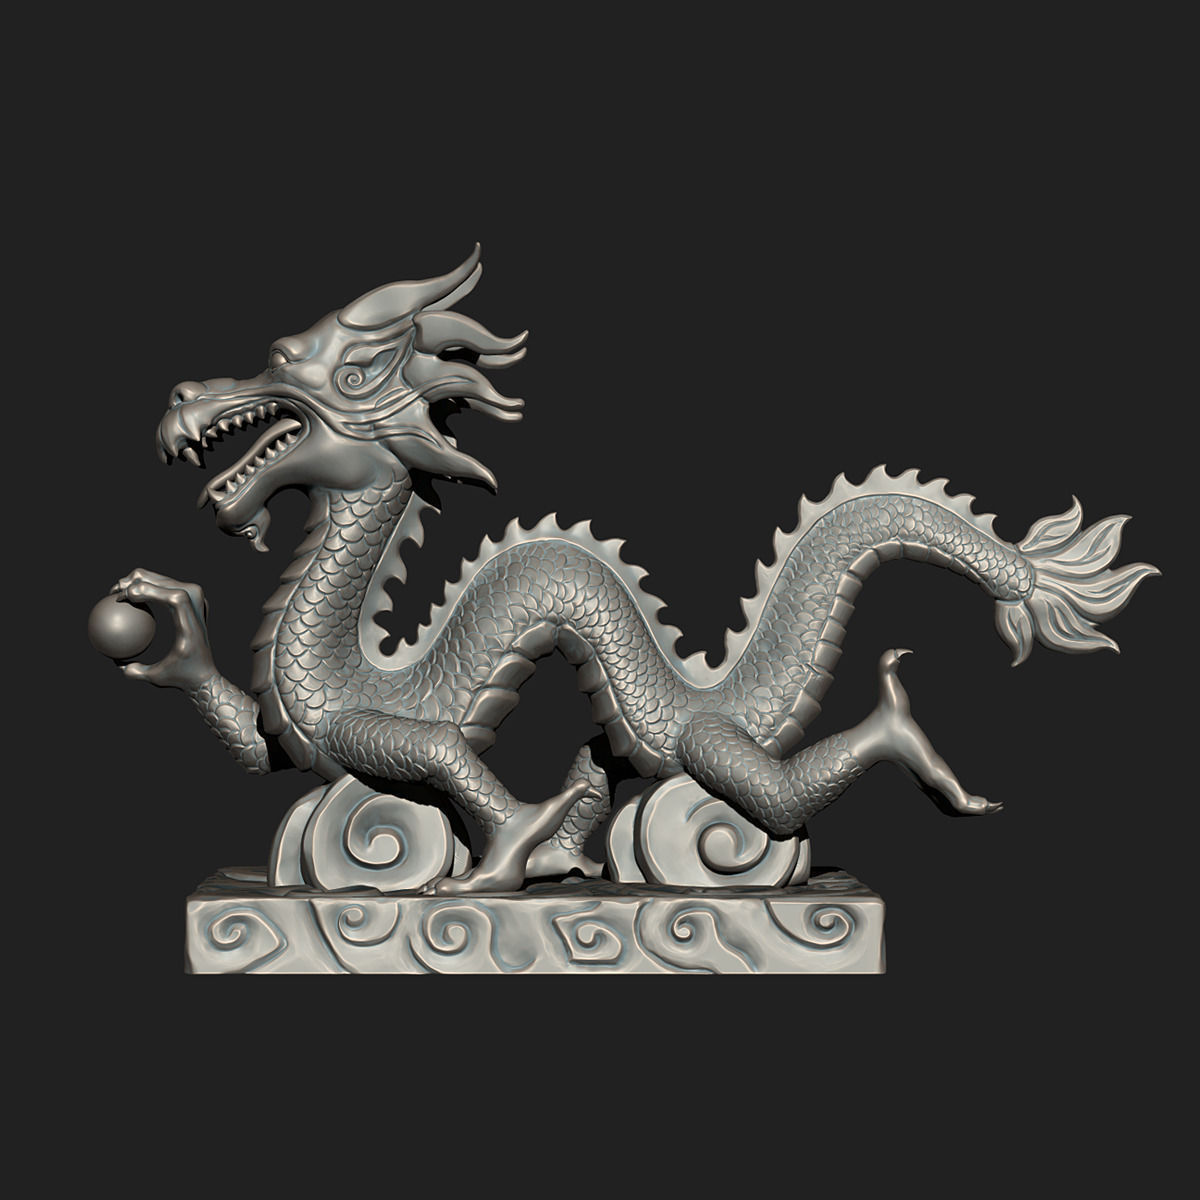 chinese dragon 3d model - photo #16